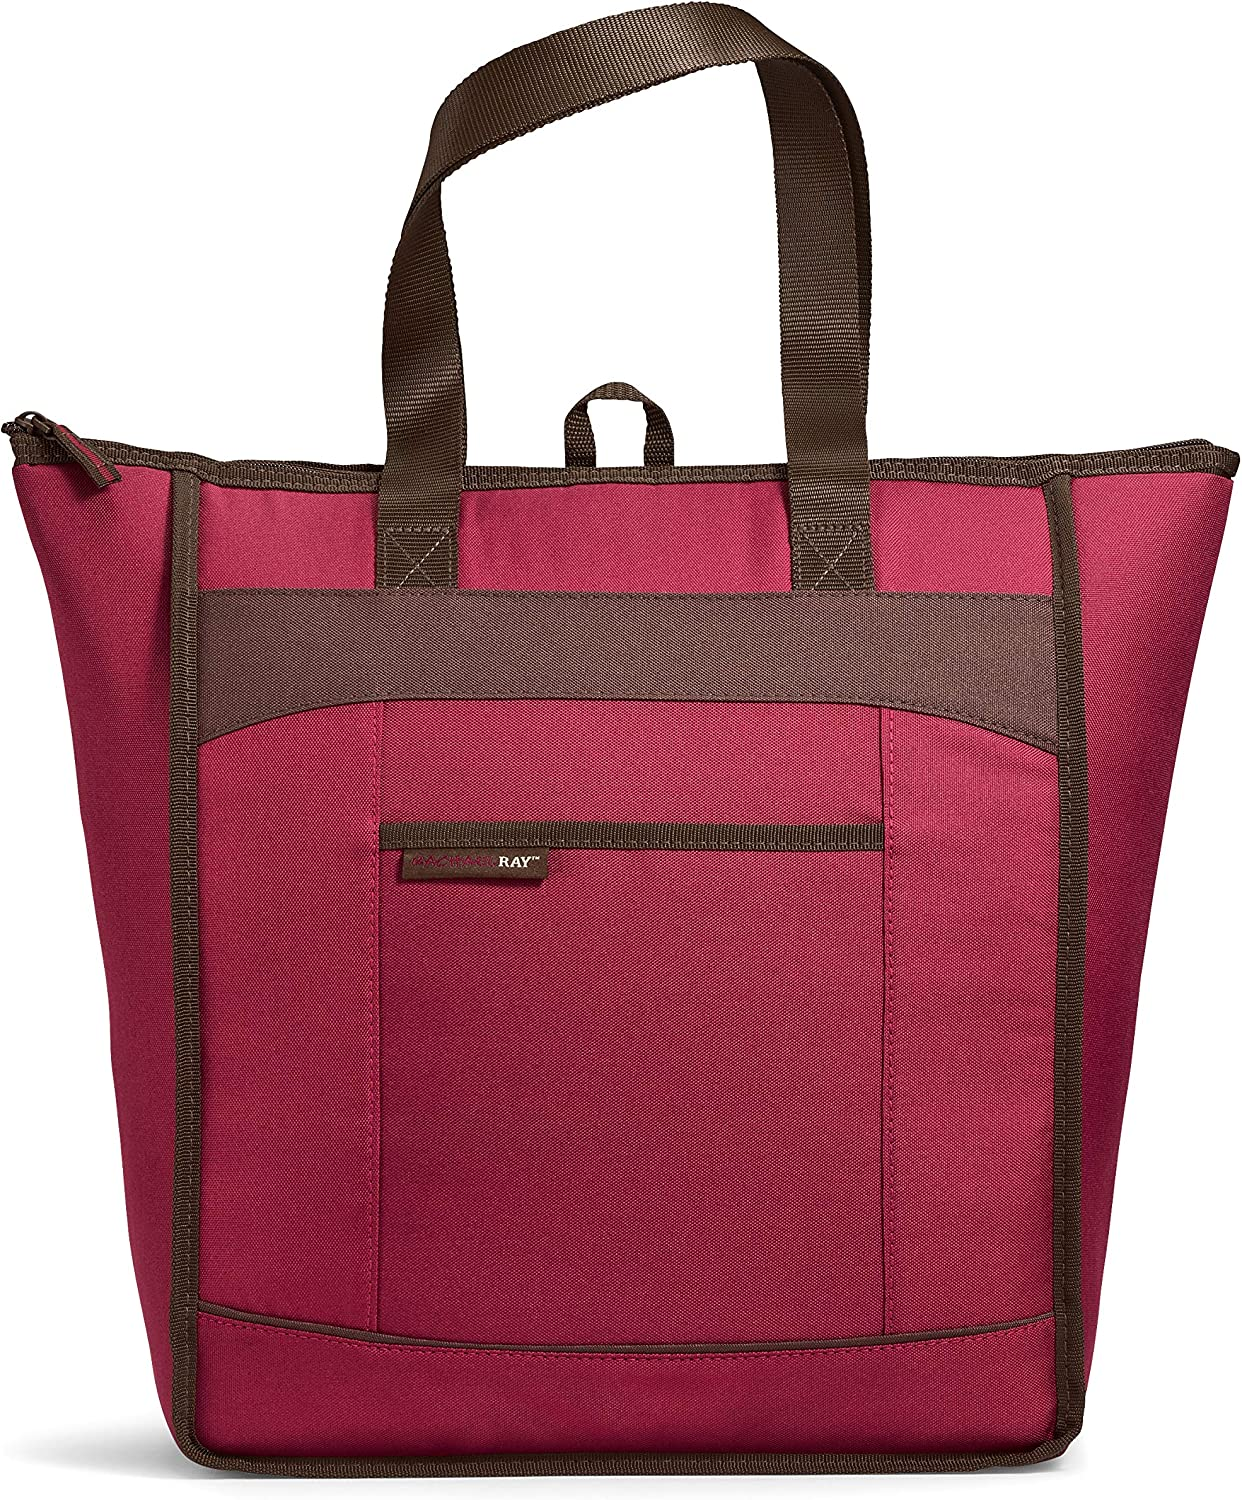 "Rachael Ray, Burg ChillOut Thermal Tote Bag for Cold or Hot Food, Insulated, Reusable, Burgundy, 18.5"" X 6"" X 16.5"